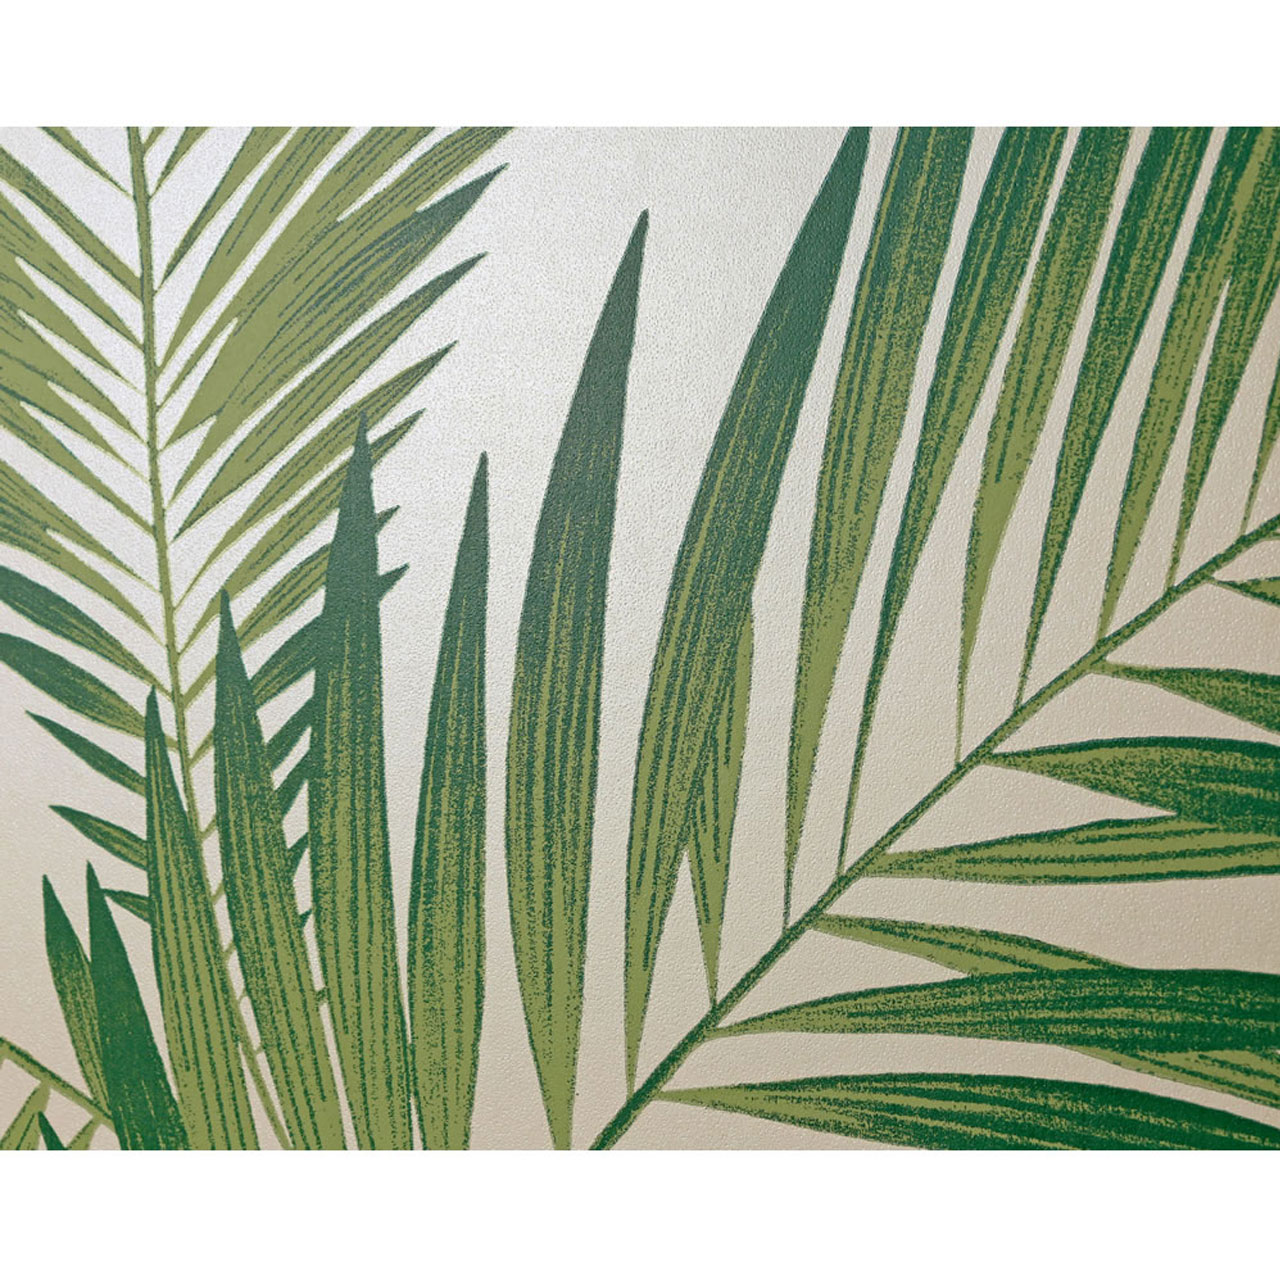 Details about palm trees wallpaper tropical jungle luxury weight white green leaves arthouse